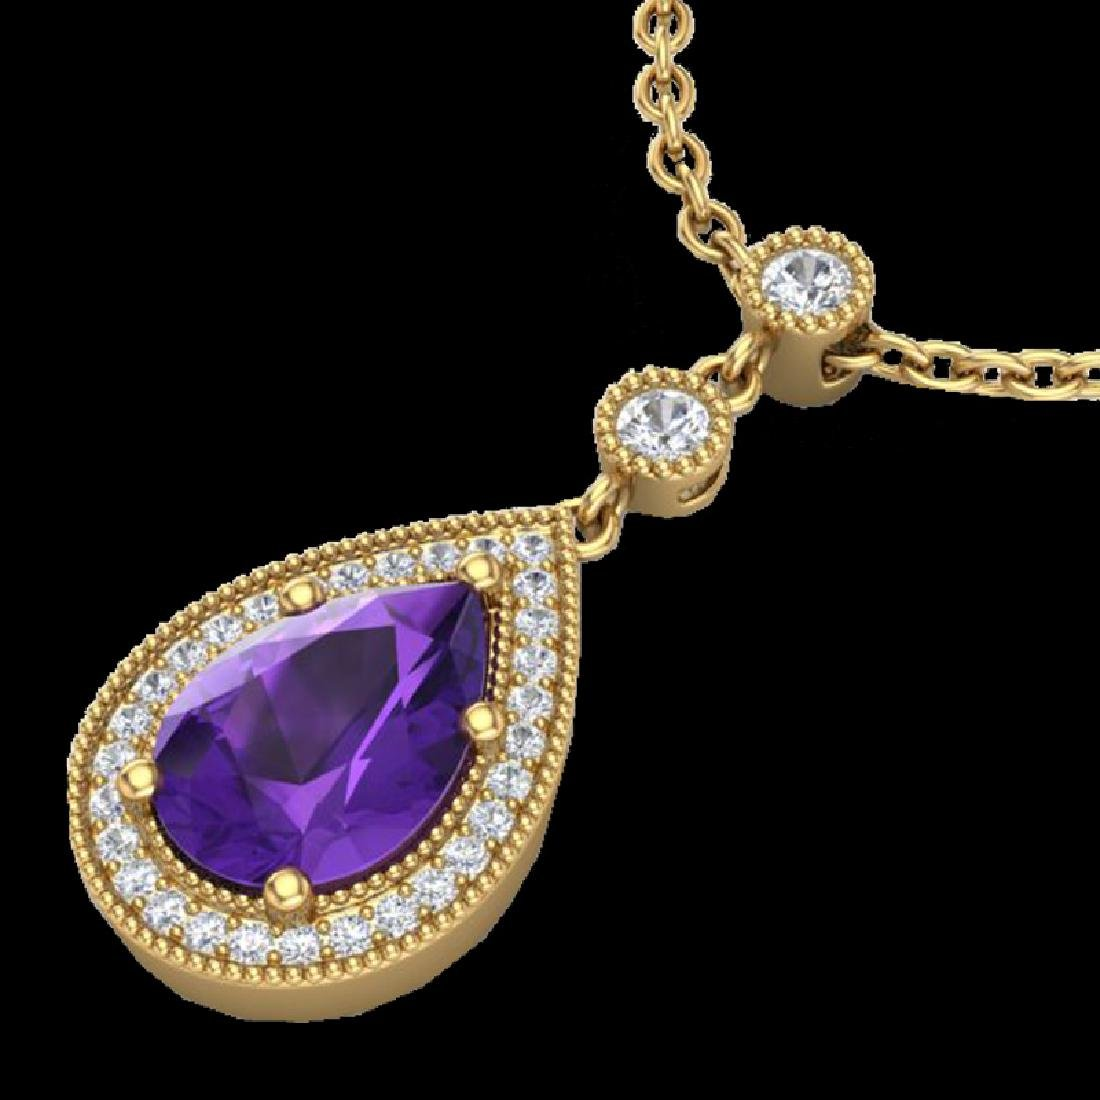 2.25 CTW Amethyst & Micro Pave VS/SI Diamond Necklace